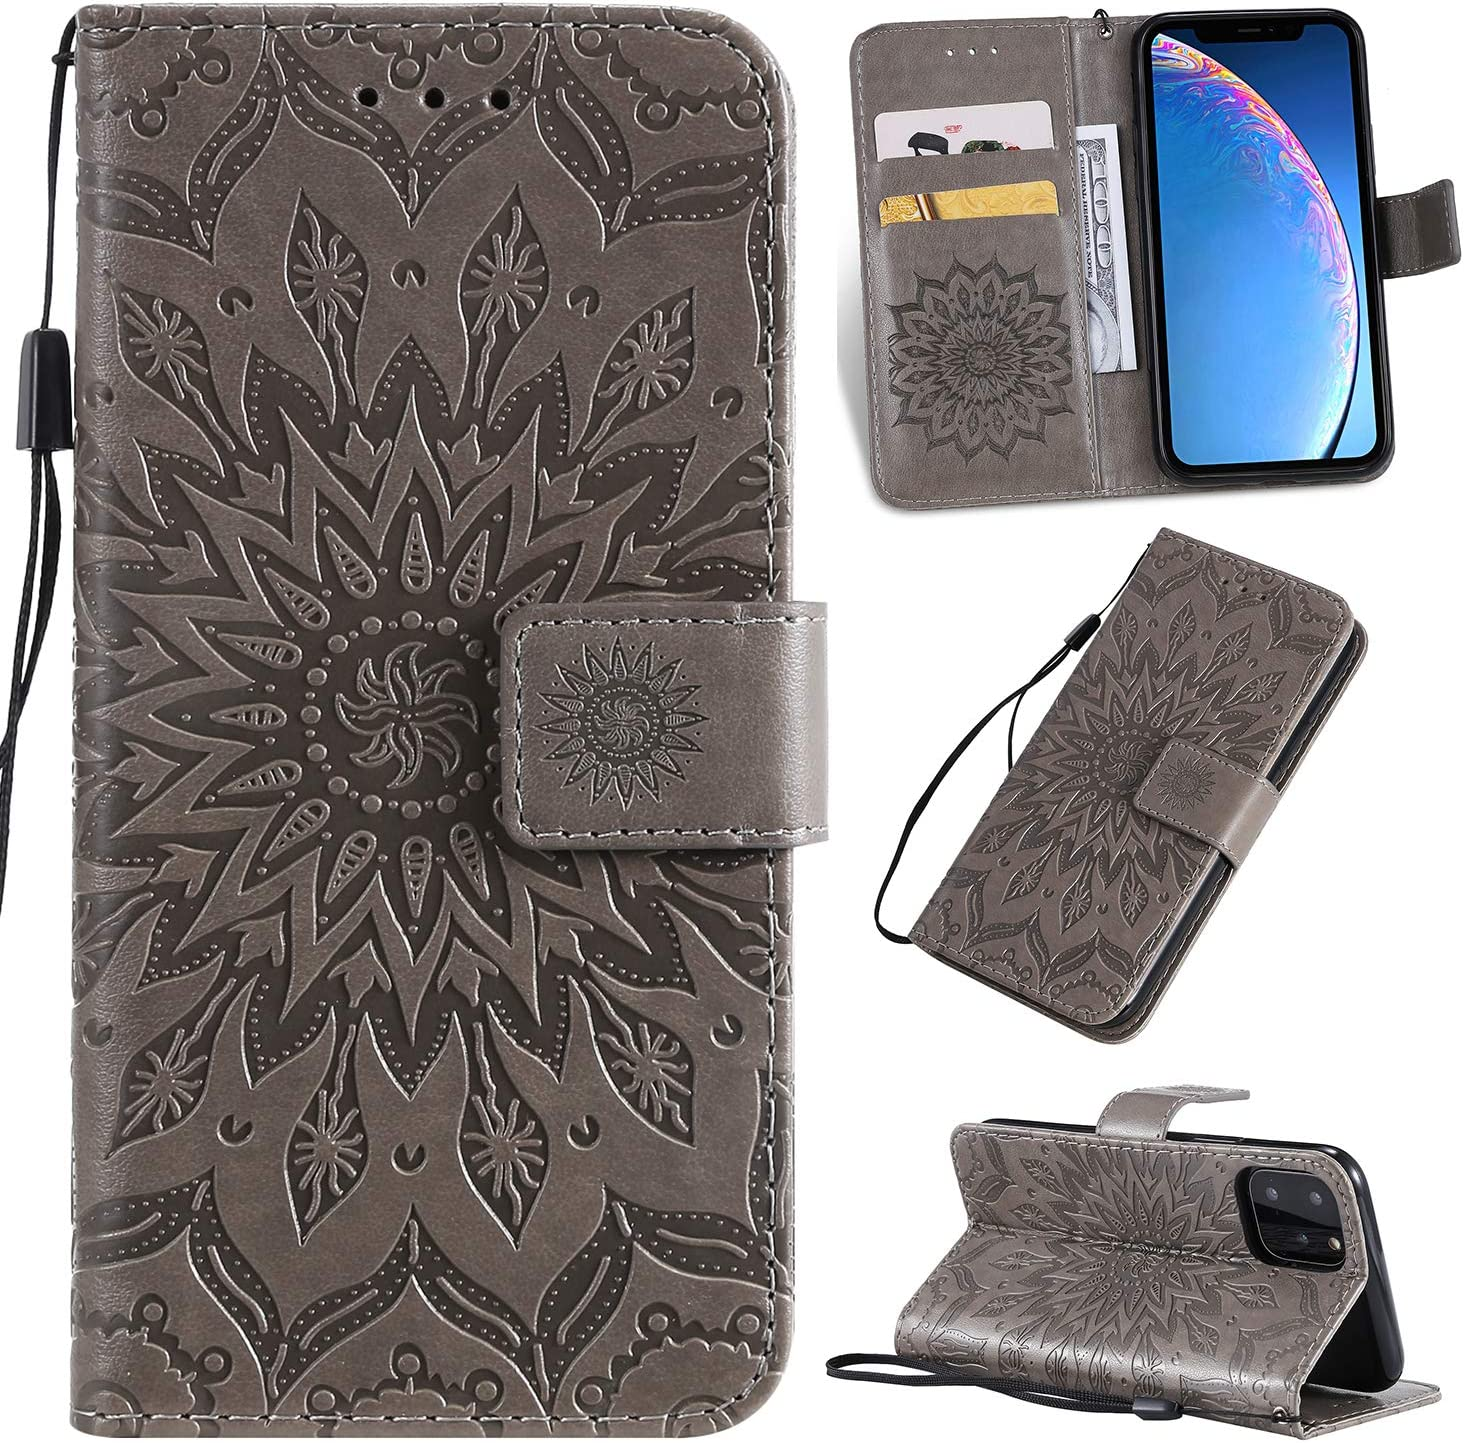 Cfrau Kickstand Wallet Case with Black Stylus for iPhone 11 Pro 2019,Retro Mandala Sunflower PU Leather Magnetic Flip Folio Stand Soft Silicone Card Slots Case with Wrist Strap Brown